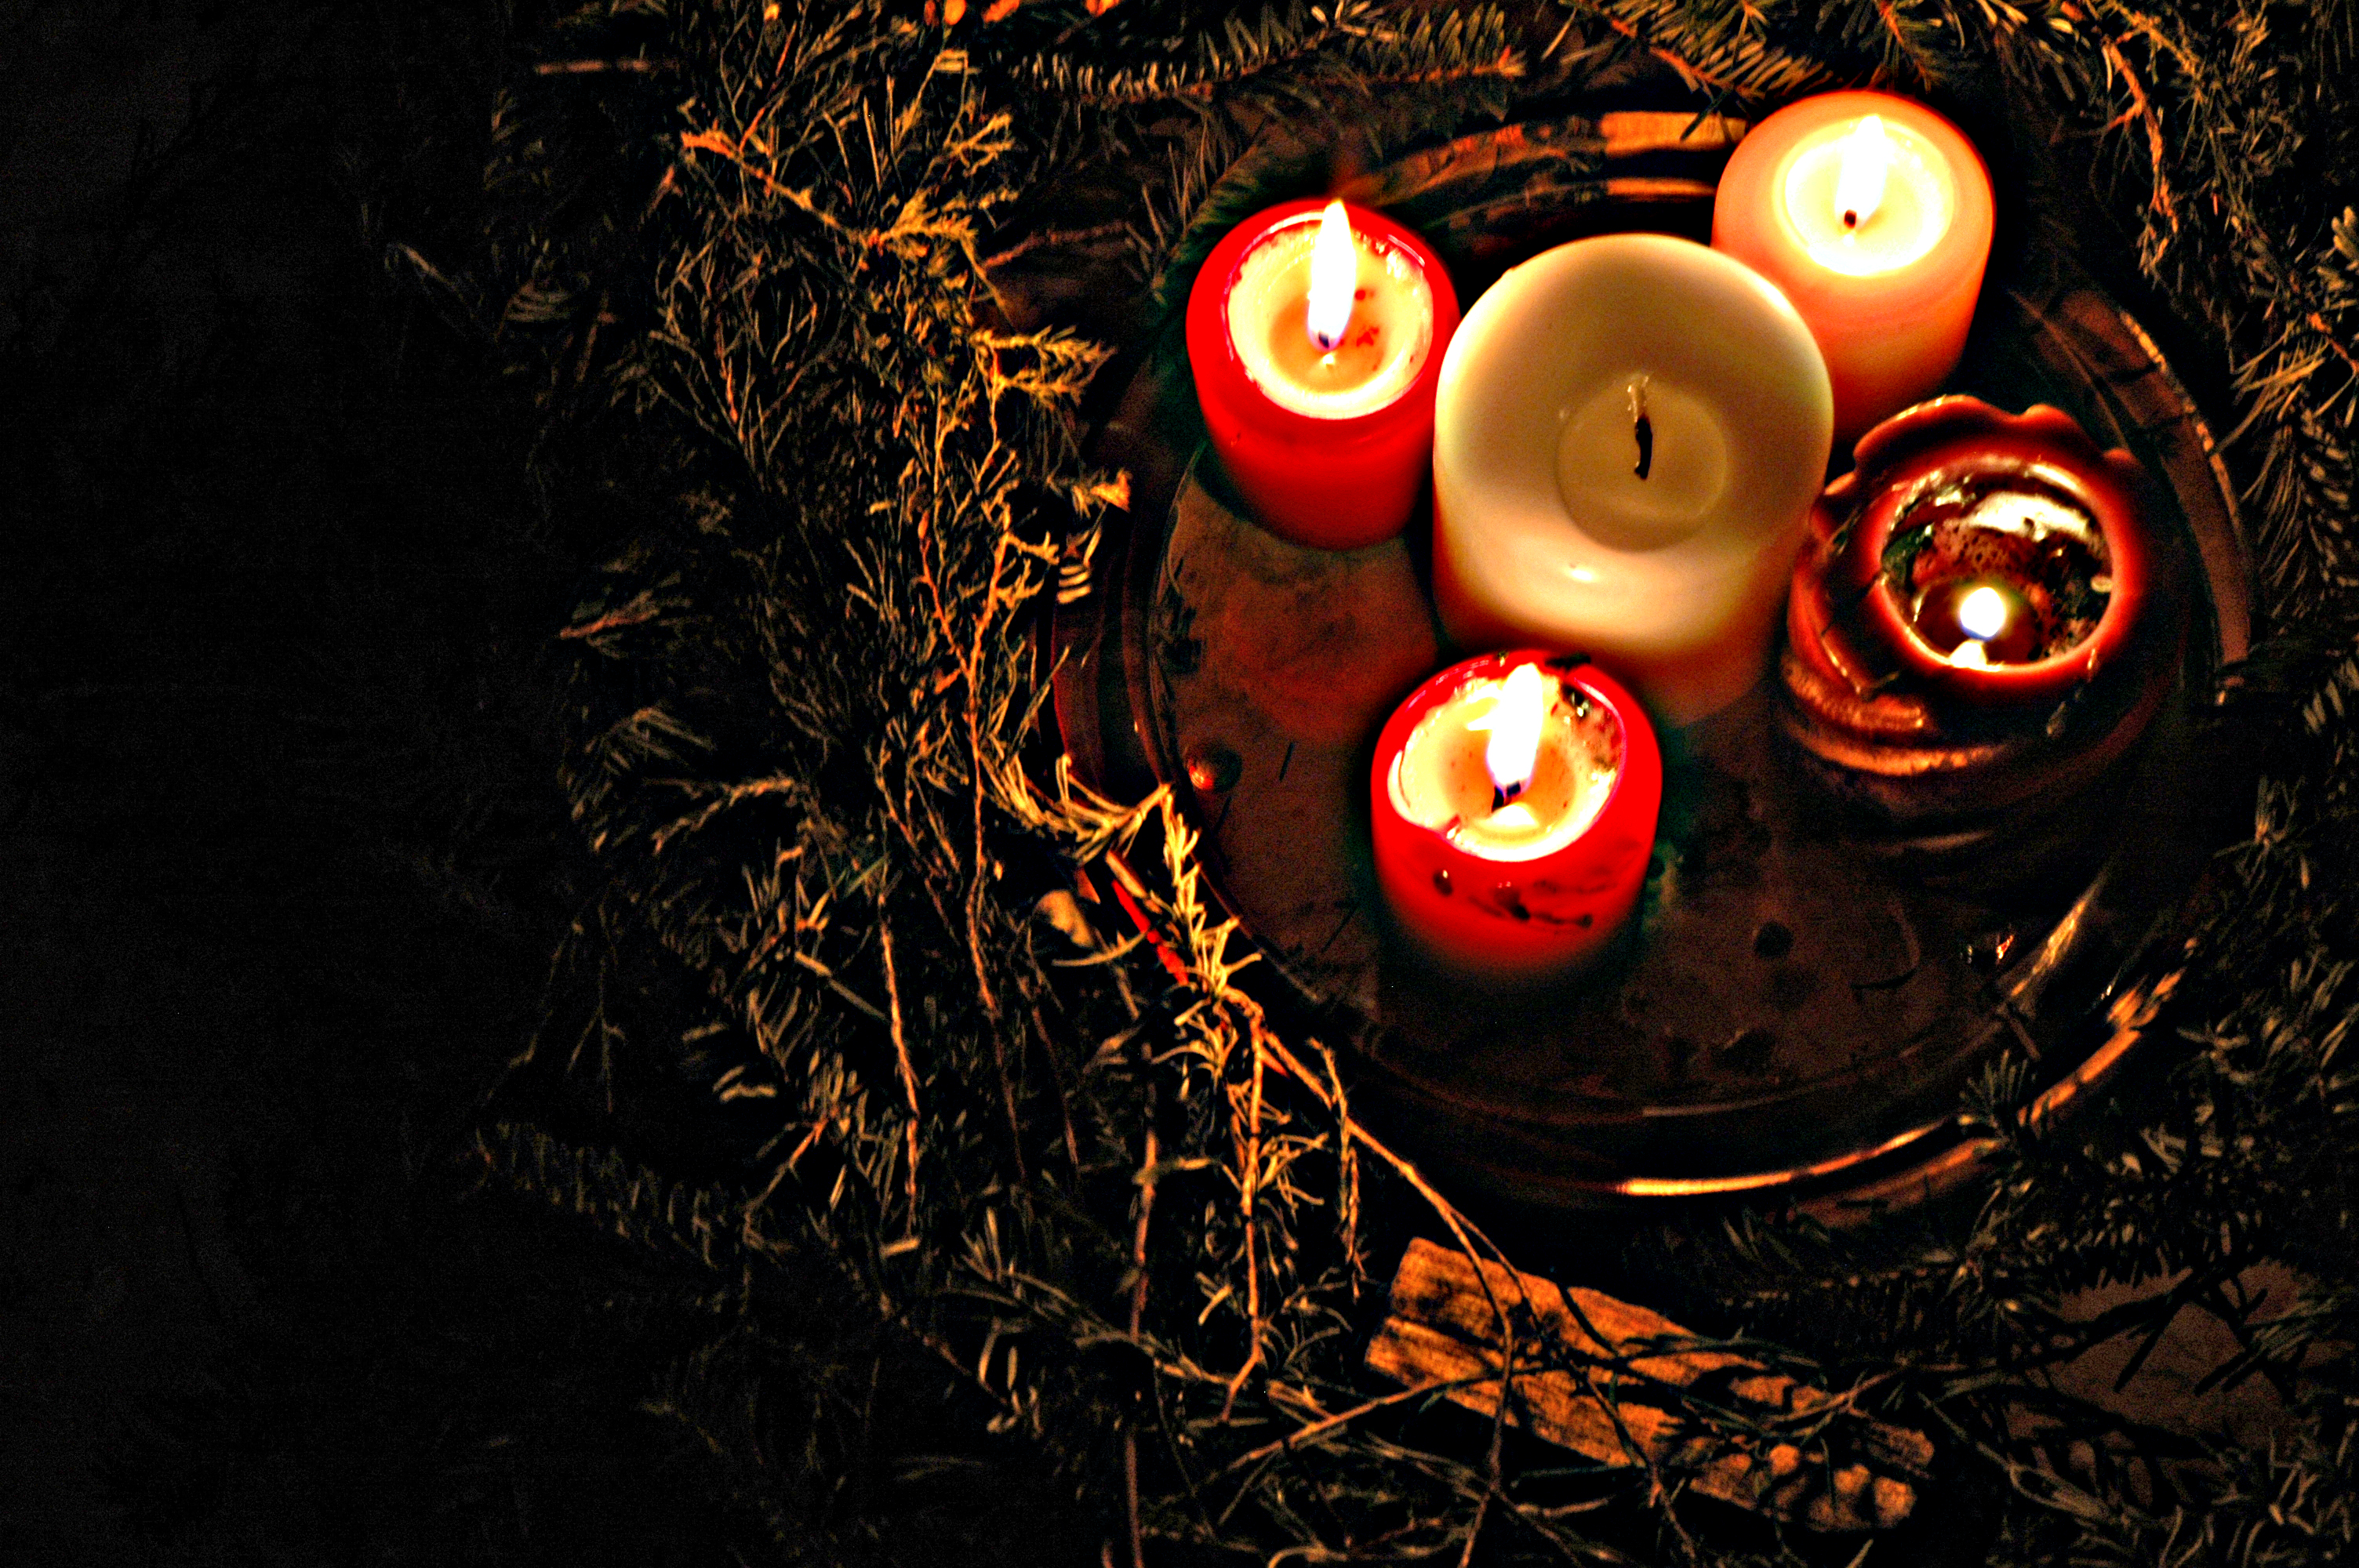 From above, an arc of a thick evergreen wreath. In its center, four red pillar candels are lit; the white pillar candle at the center is unlit.